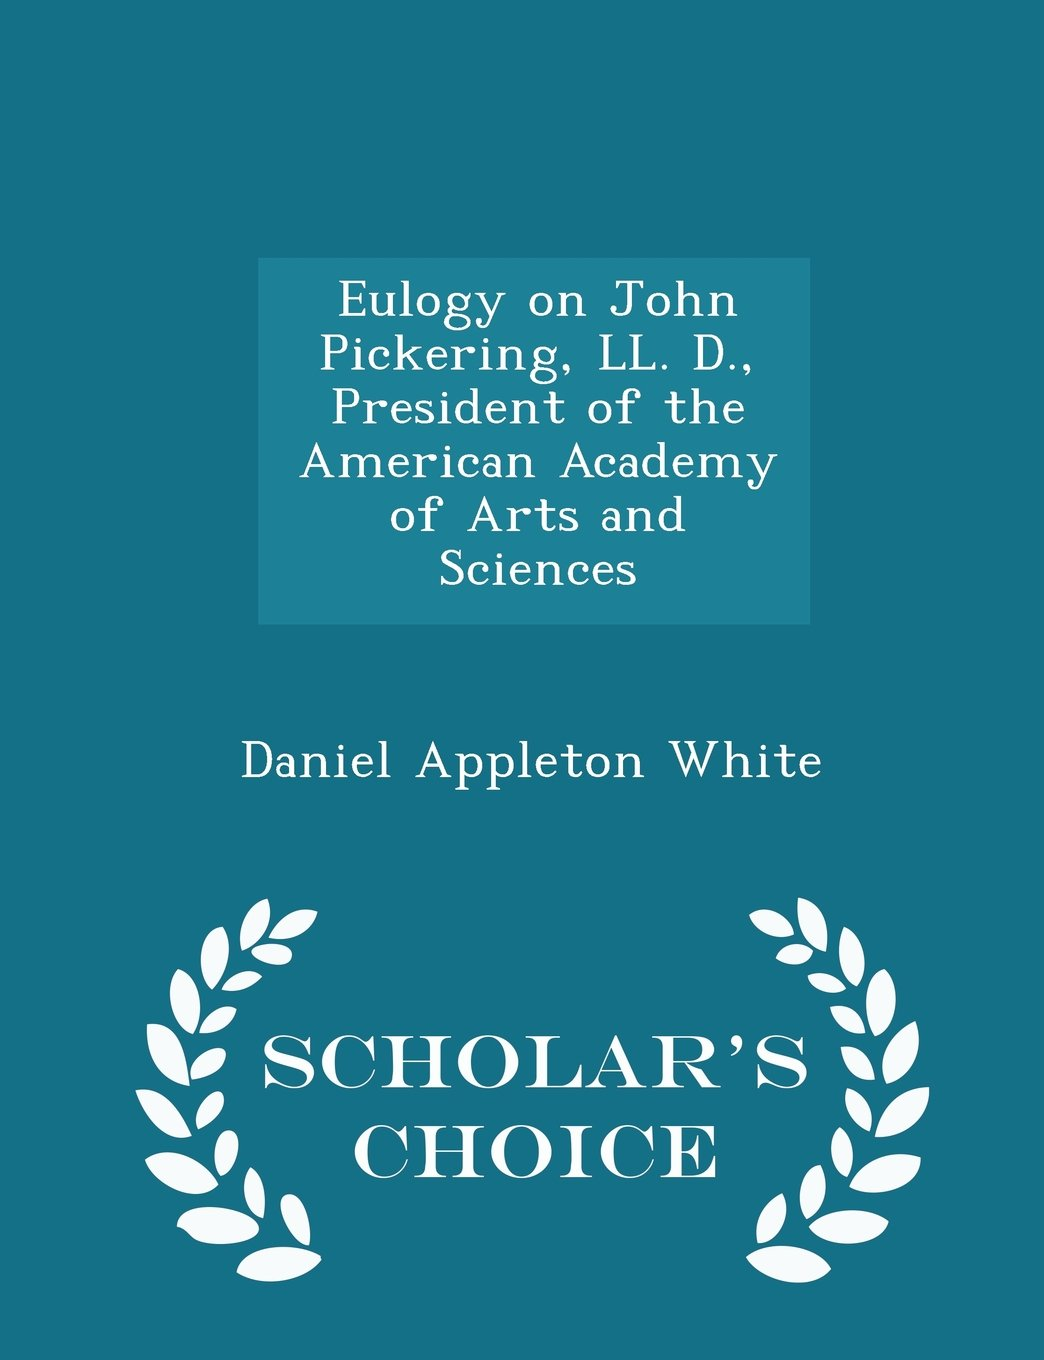 Eulogy on John Pickering, LL. D., President of the American Academy of Arts and Sciences - Scholar's Choice Edition ePub fb2 book